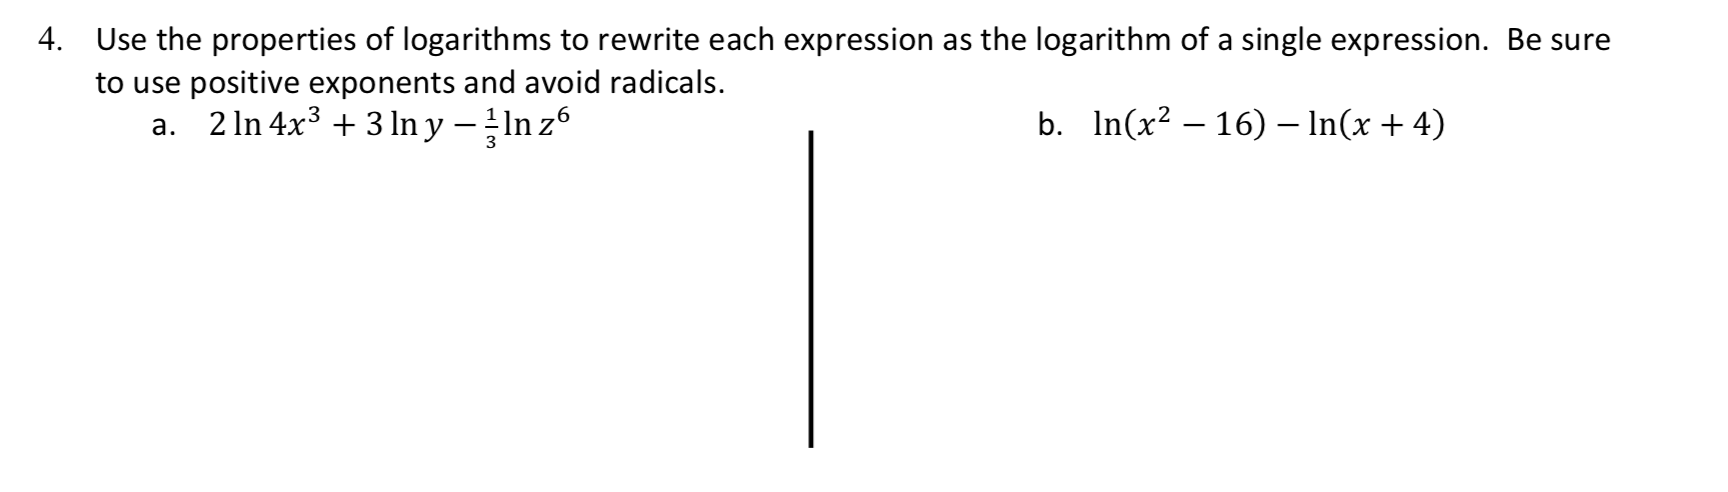 4. Use the properties of logarith ms to rewrite each expression as the logarithm of a single expression. Be sure to use positive exponents and avoid radicals 2 In 4x33 n y n z6 In(x2 16) - In(x 4) b. а.